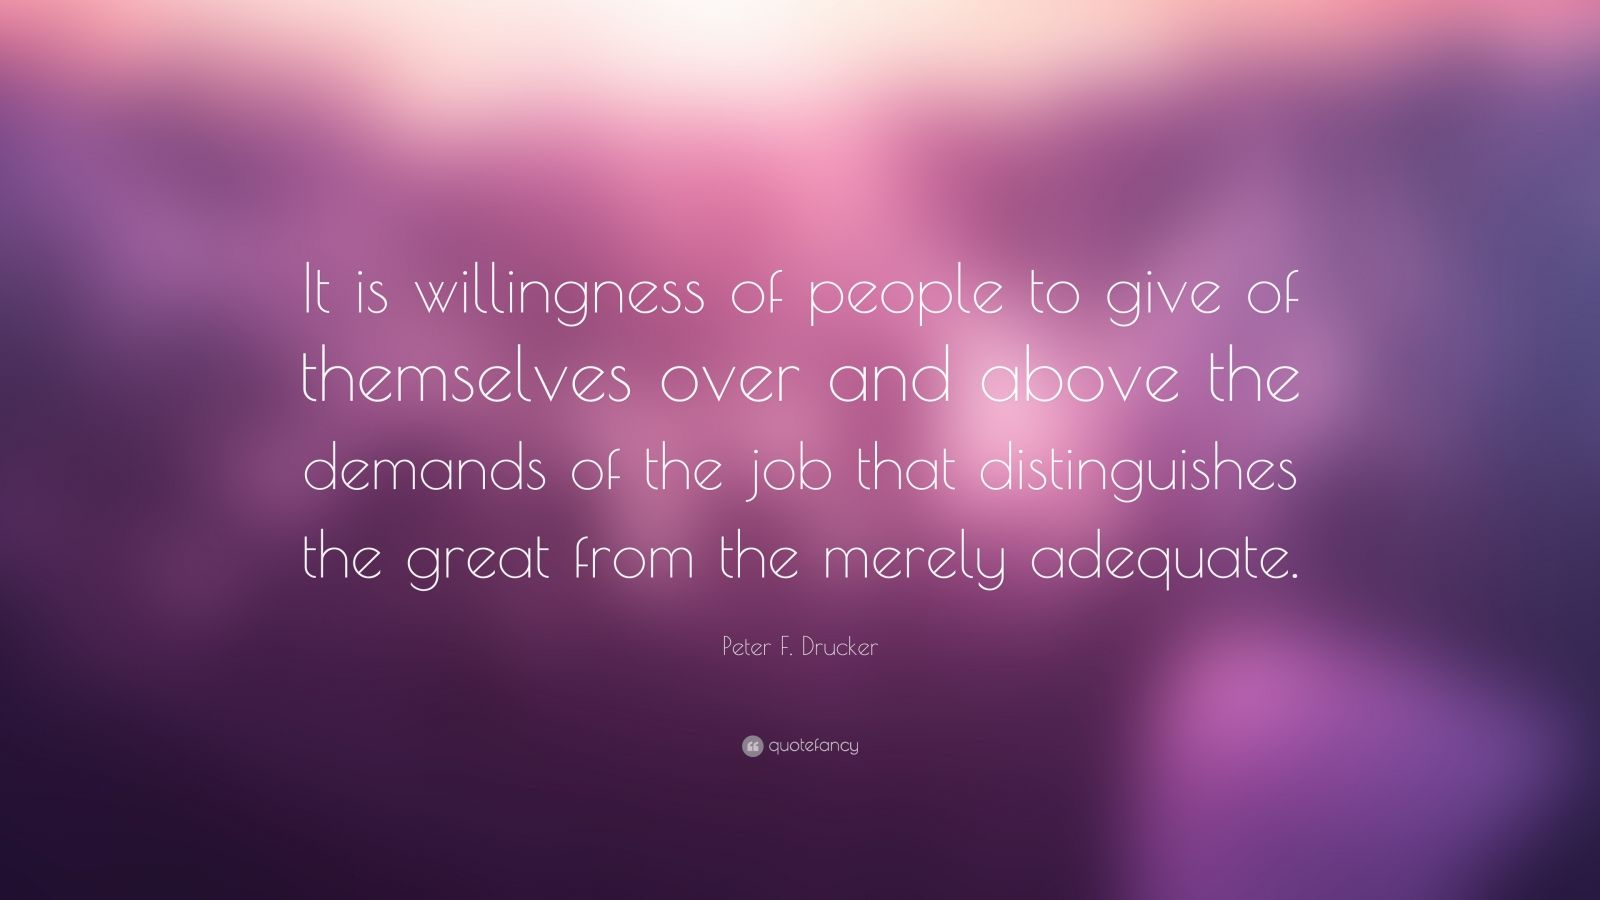 """Peter F. Drucker Quote: """"It is willingness of people to give of themselves over and above the demands of the job that distinguishes the great from the merely adequate."""""""